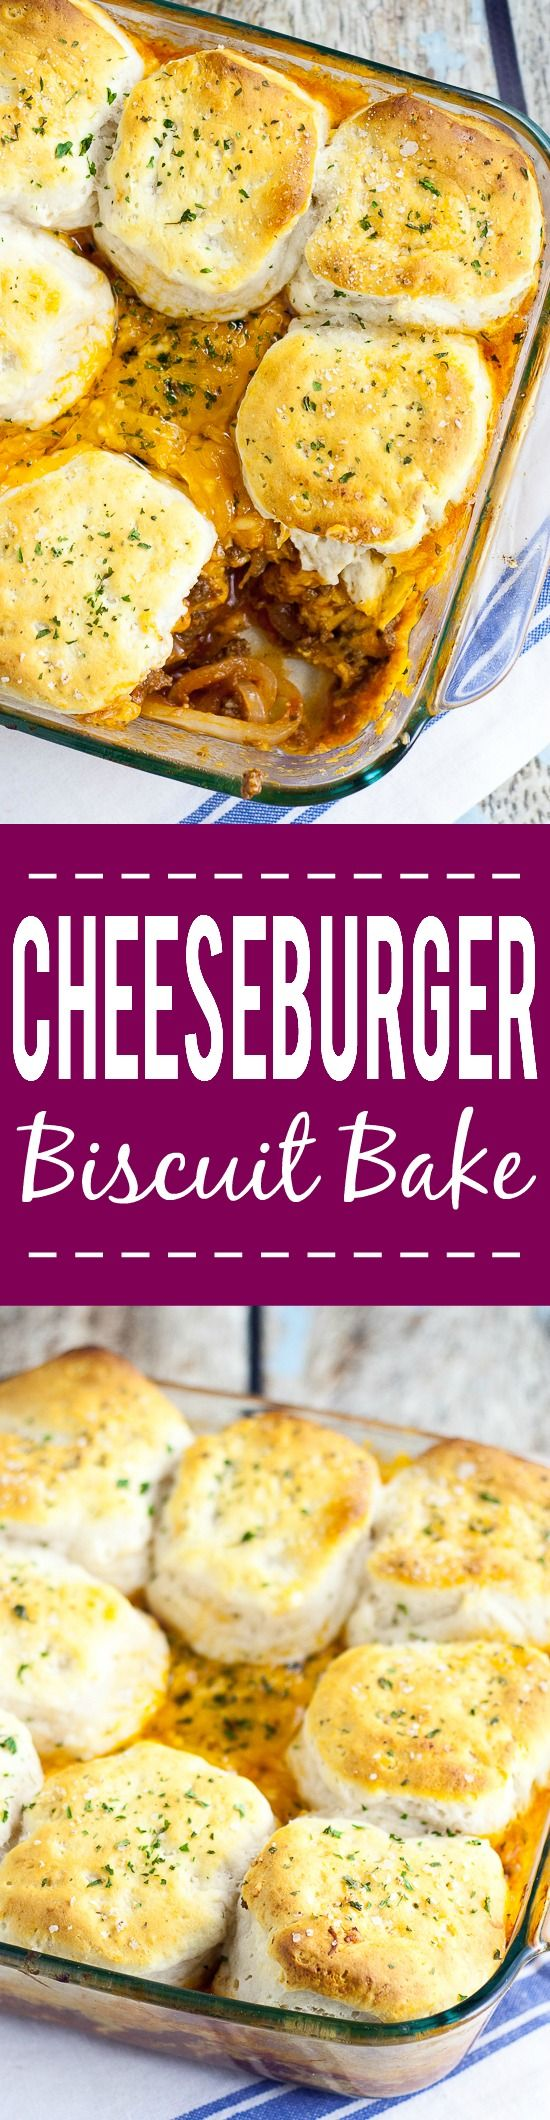 Cheeseburger Biscuit Bake Recipe This Cheeseburger Biscuit Bake Recipe Is A Delicious 30 Minute Recipe With Ground B Recipes Biscuit Bake Ground Beef Recipes